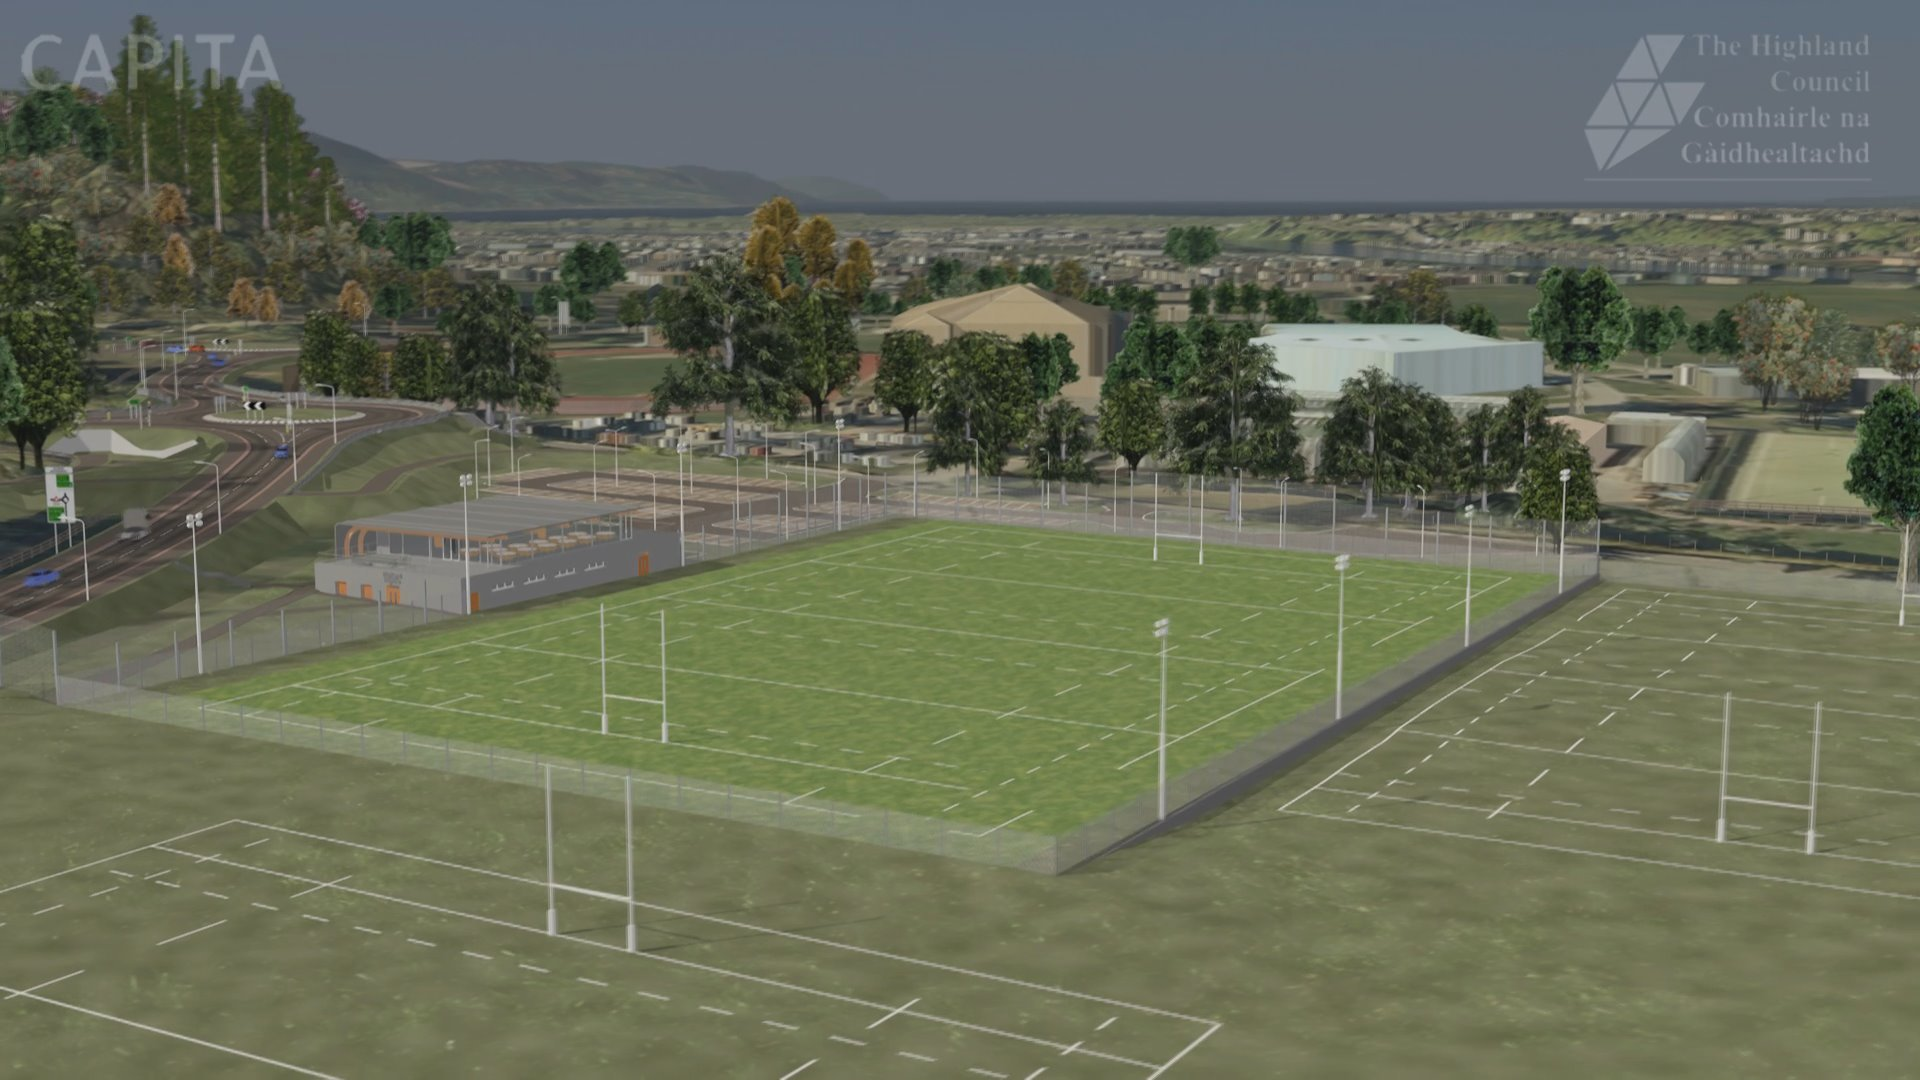 A vision of the new facilities at Highland Rugby Club.